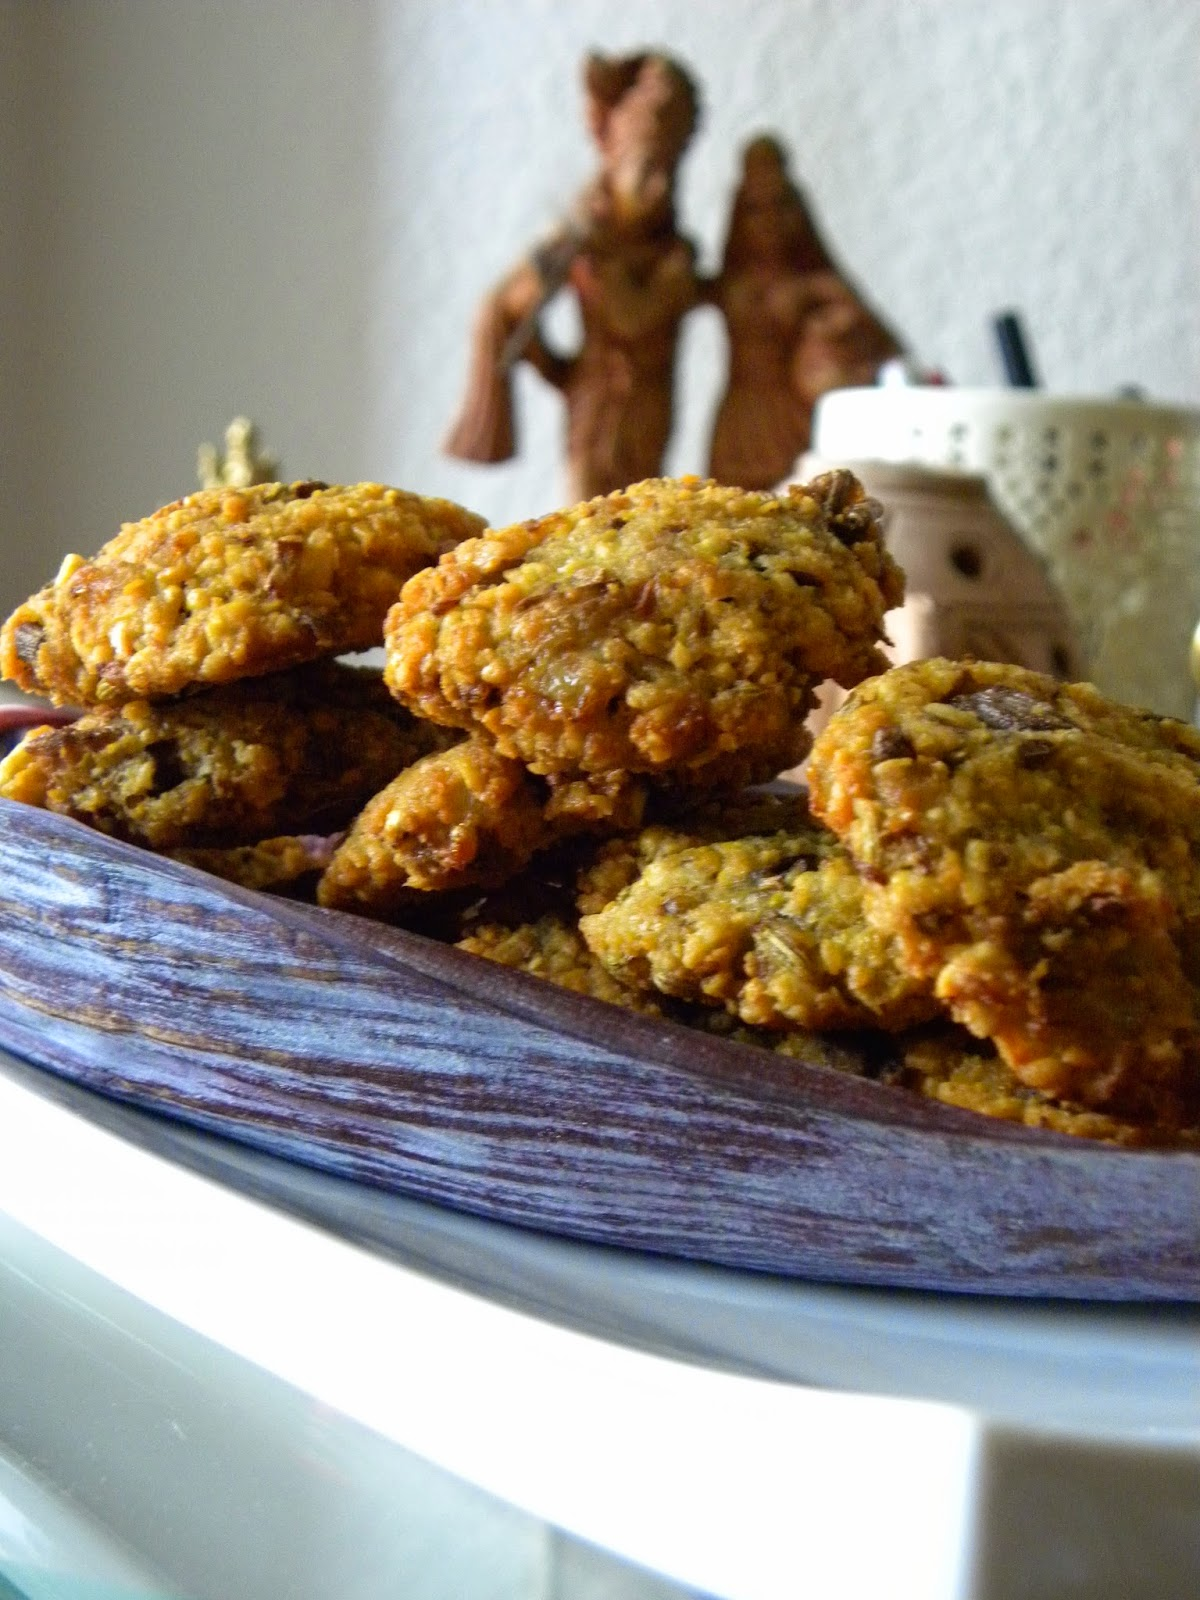 Deep fried lentil discs enriched with banana flower